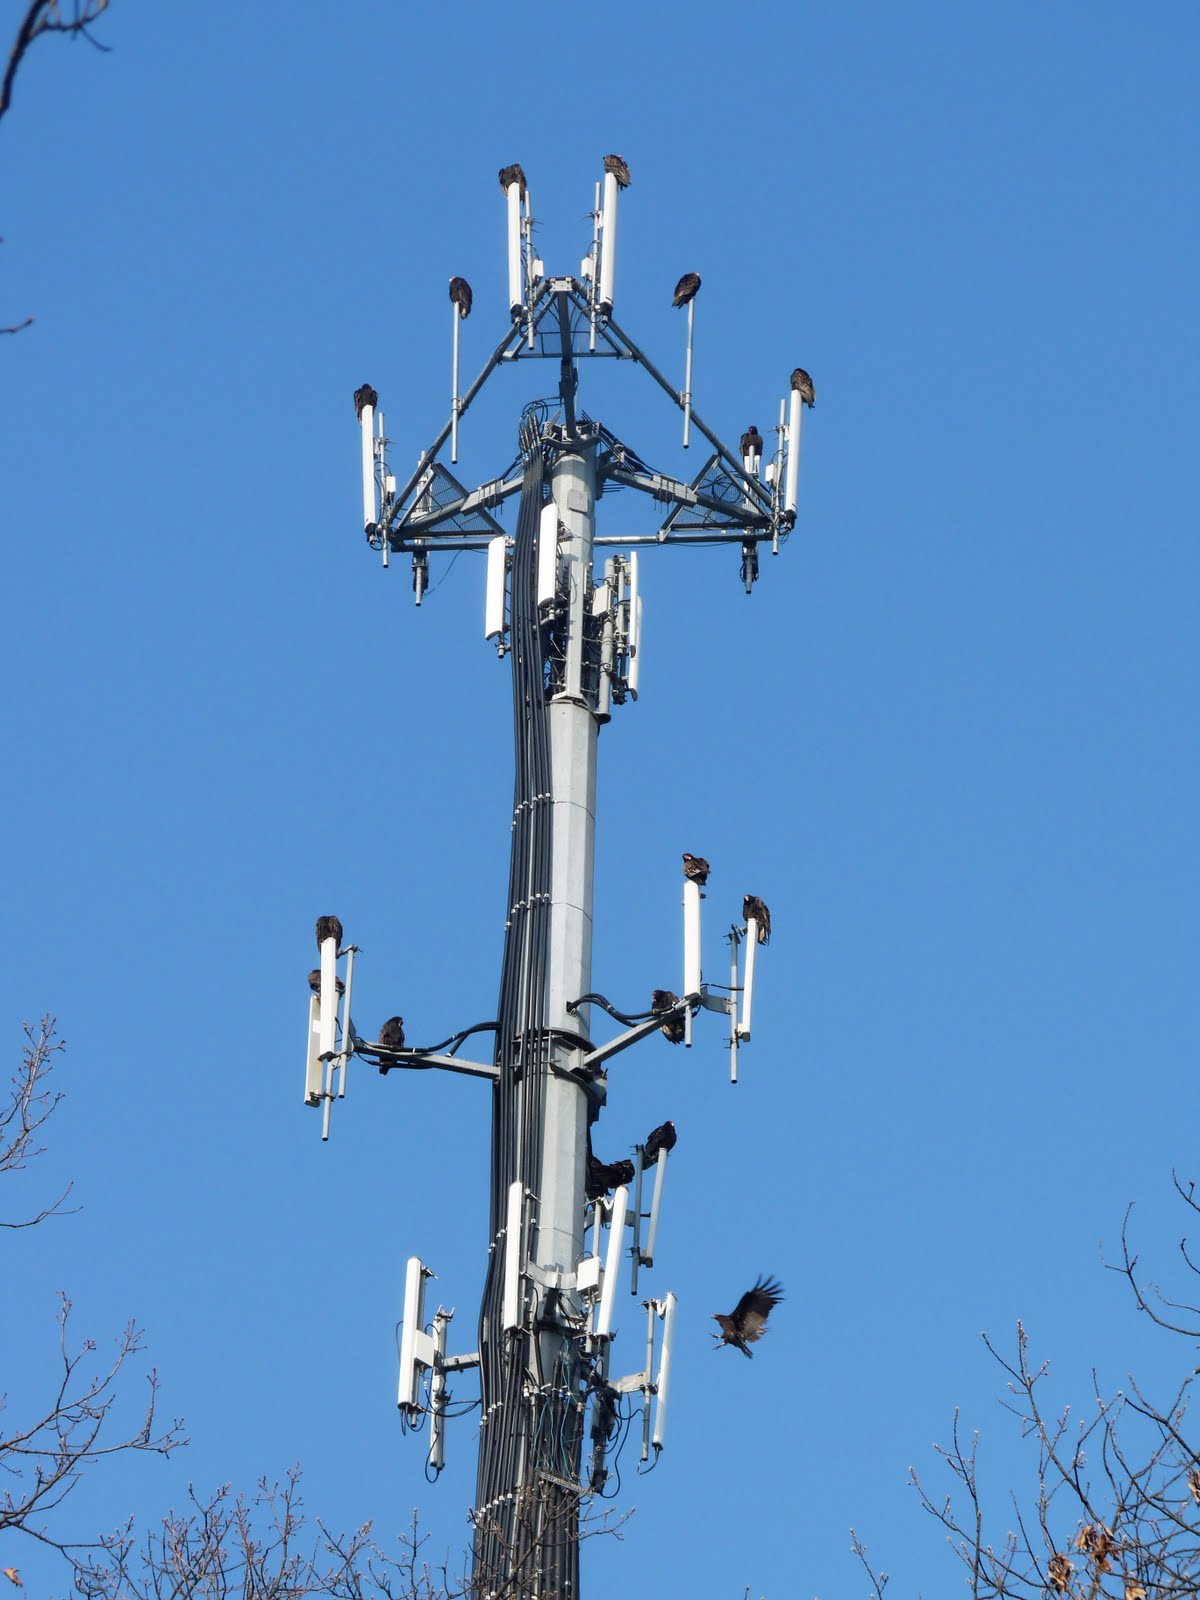 http://upload.wikimedia.org/wikipedia/commons/9/90/Vultures_on_Cellphone_Tower.jpg